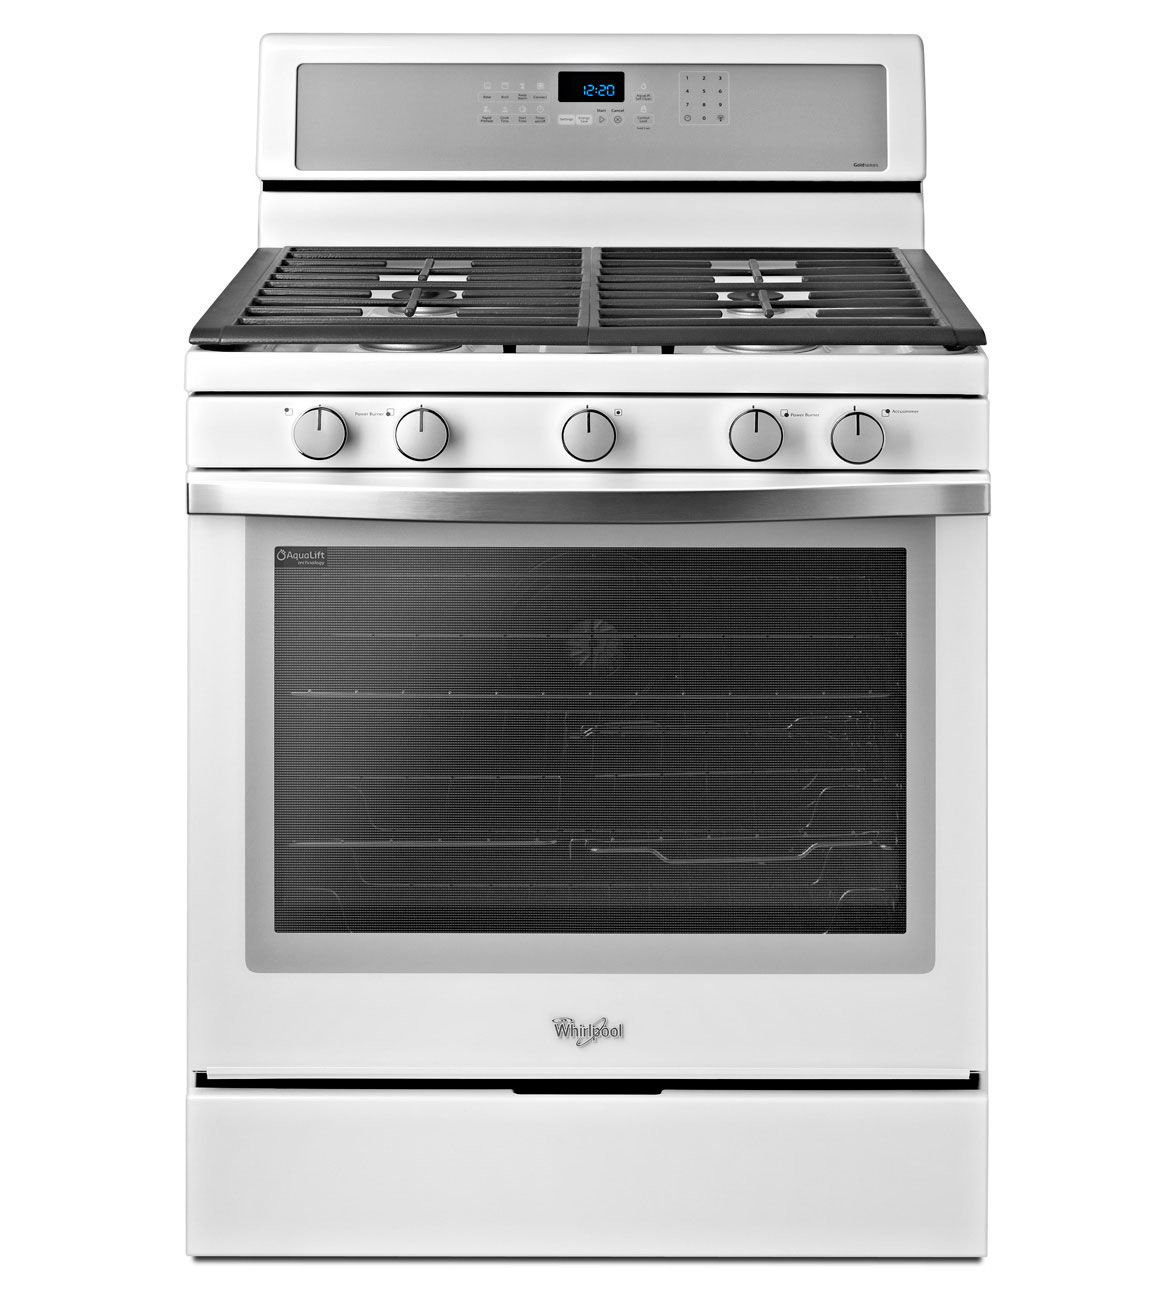 Whirlpool white ice line - Whirlpool Gold 5 8 Cu Ft Capacity Gas Range With Rapid Preheat Option In White